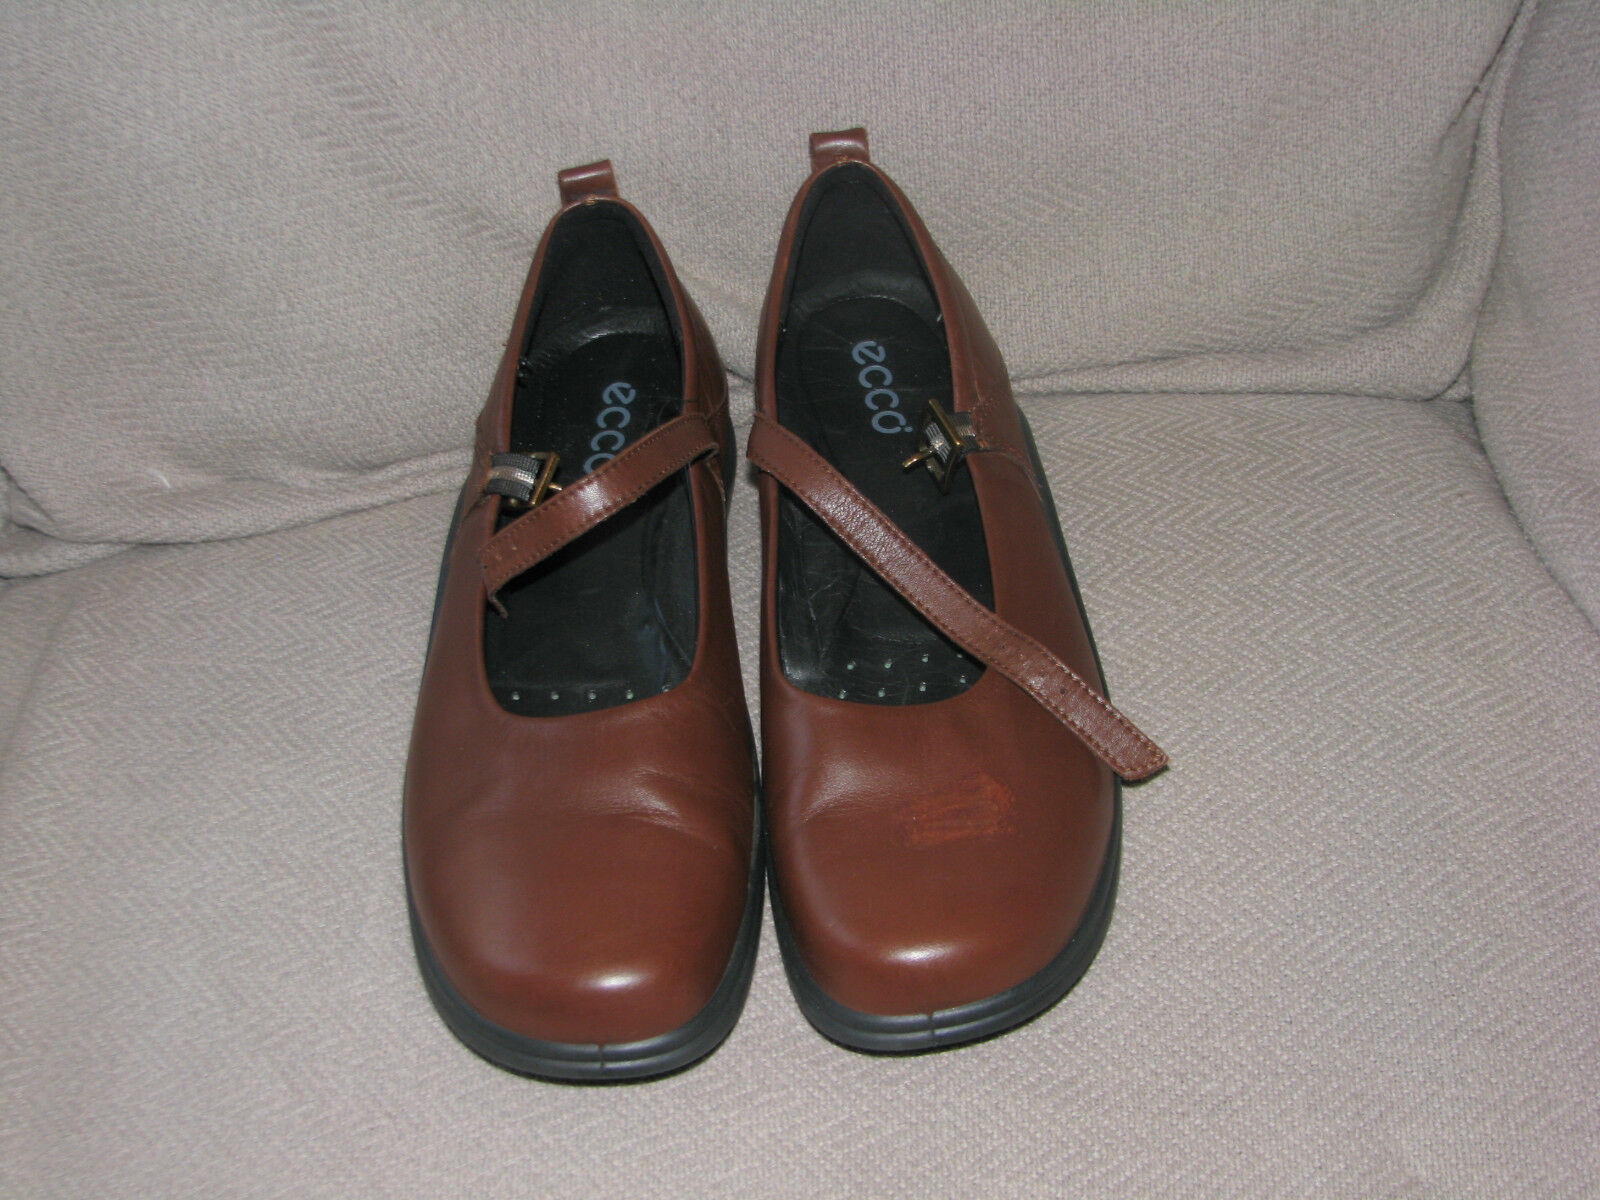 ECCO BROWN LEATHER MARY JANE SHOES 41 9.5 EEUC WORN J T 1X